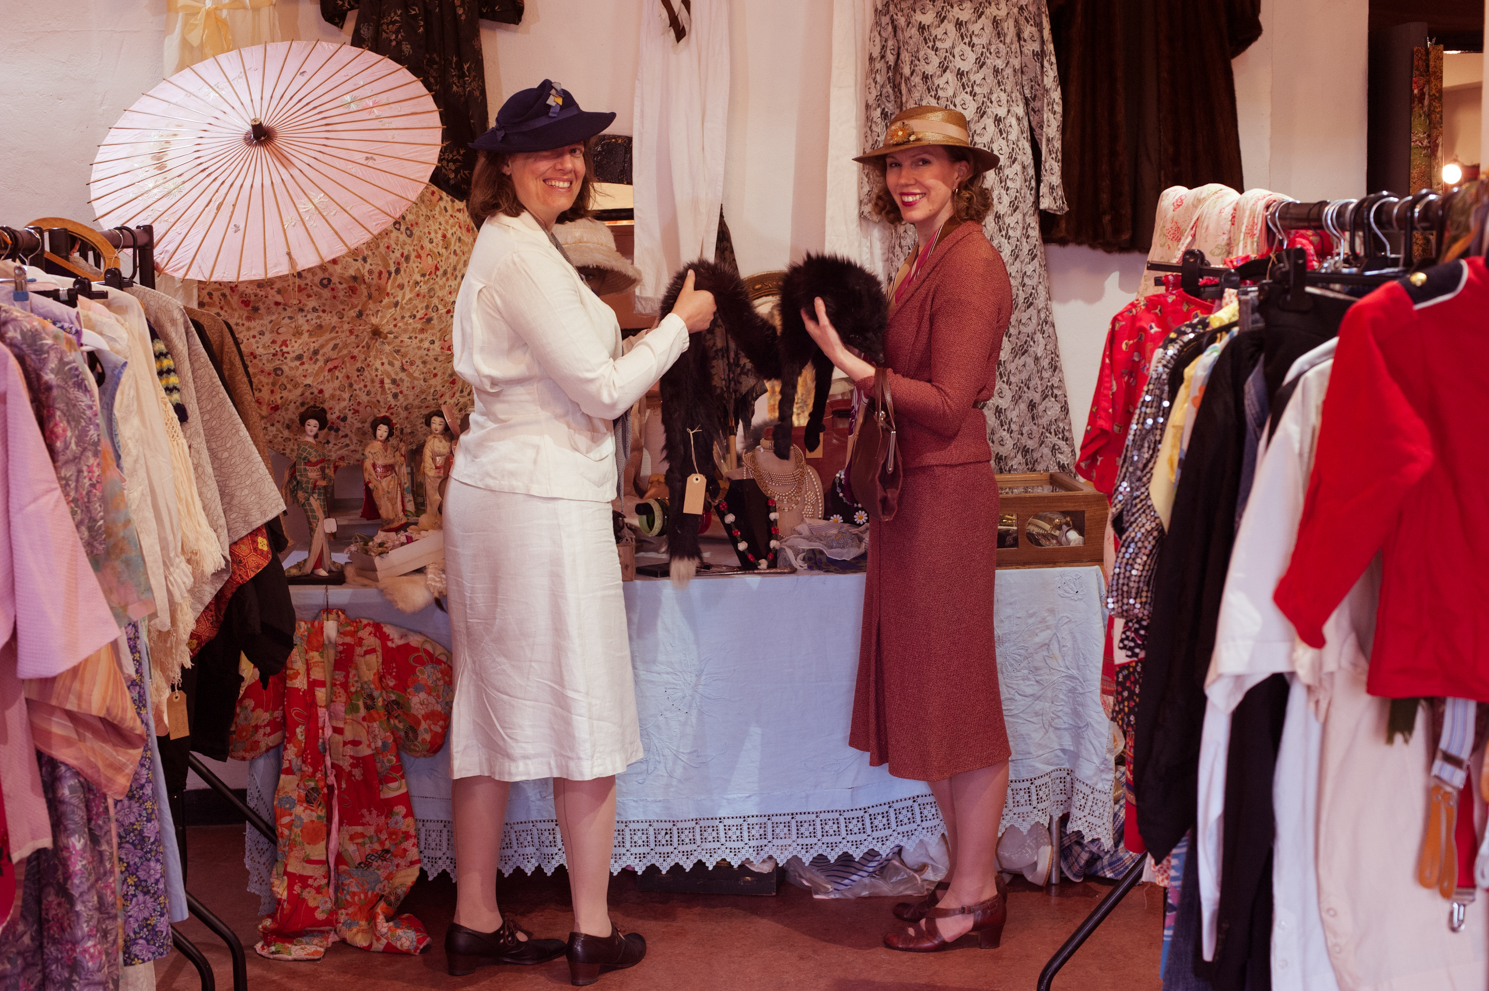 Corporate event photography at the vintage fair by Farnham, Surrey based photographer James Muller